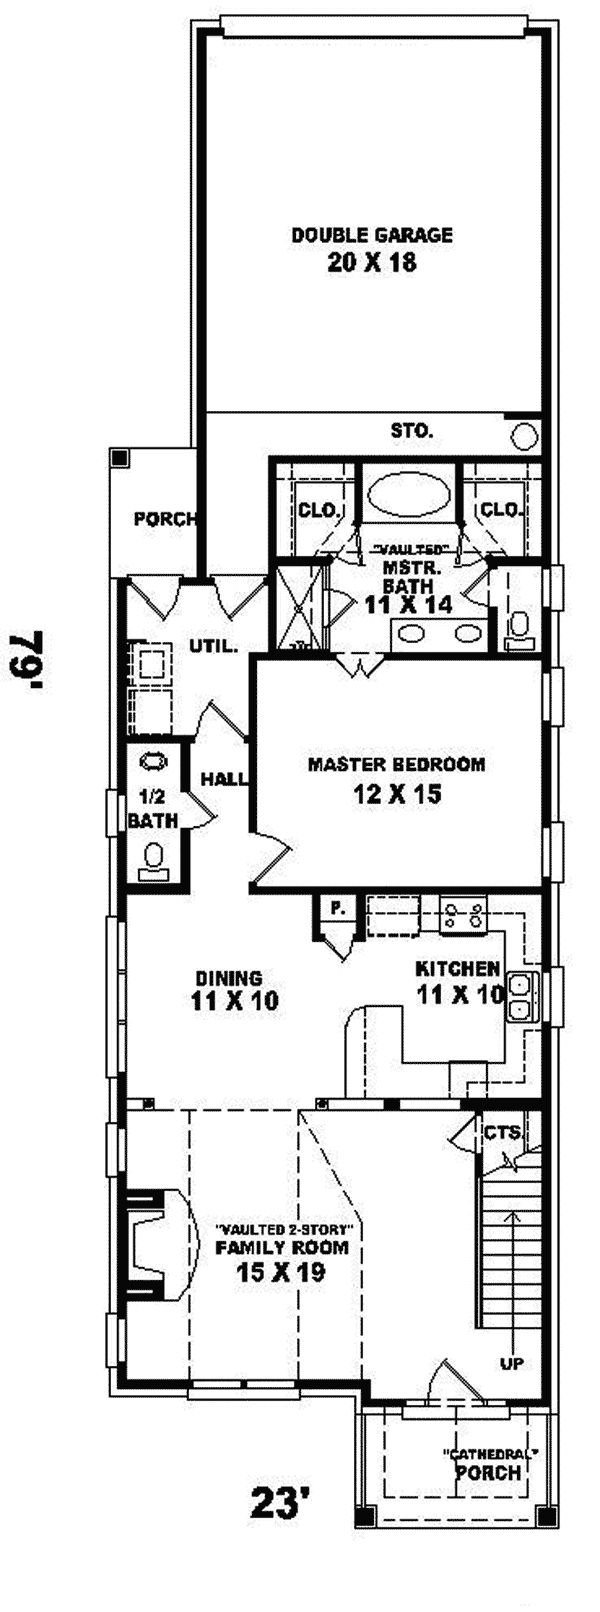 best 25 narrow house plans ideas that you will like on pinterest enderby park narrow lot home